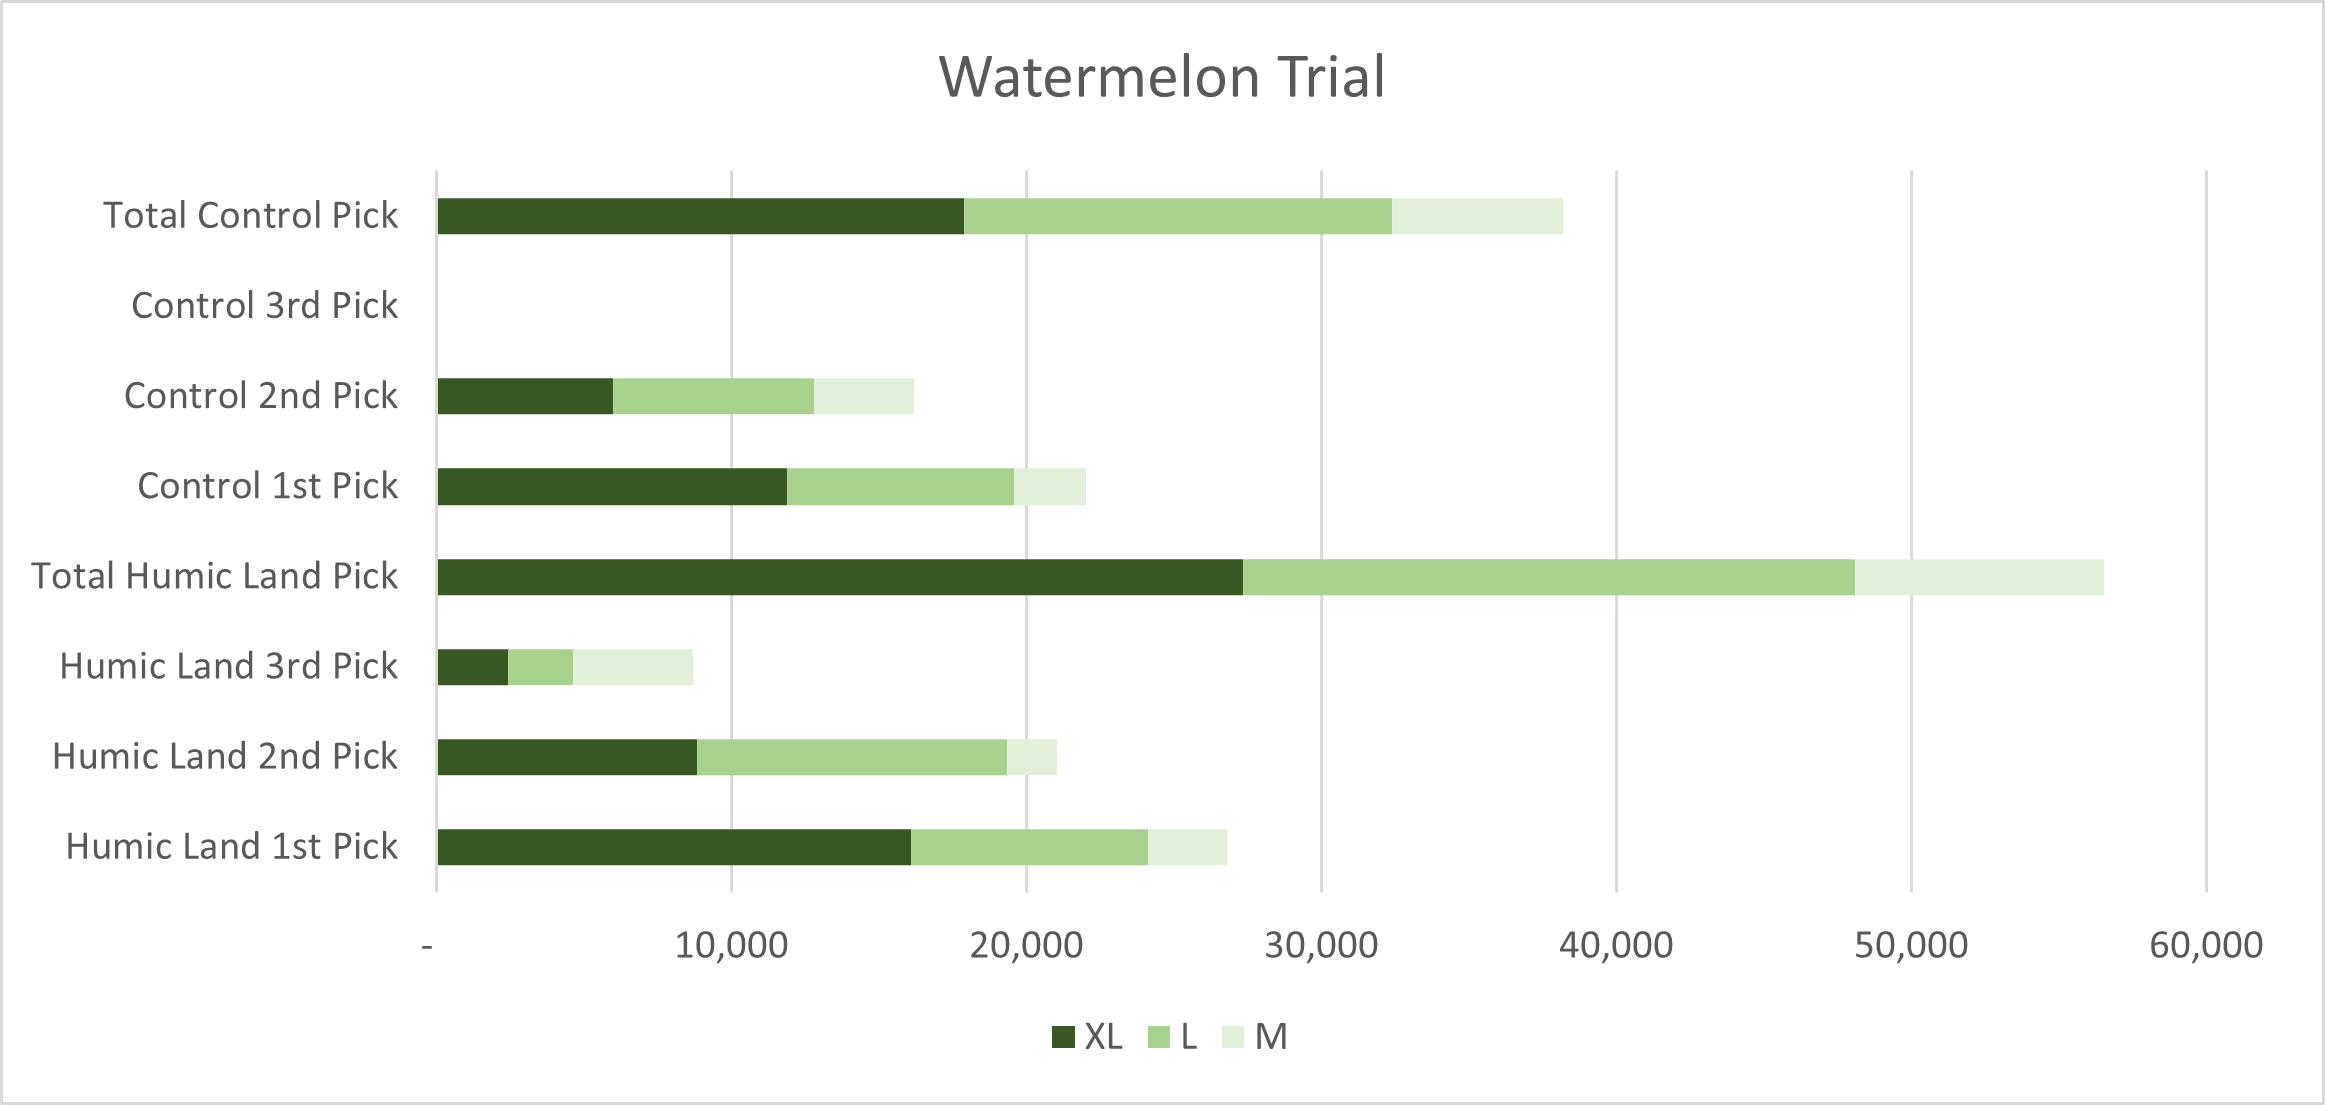 Watermelon trial results